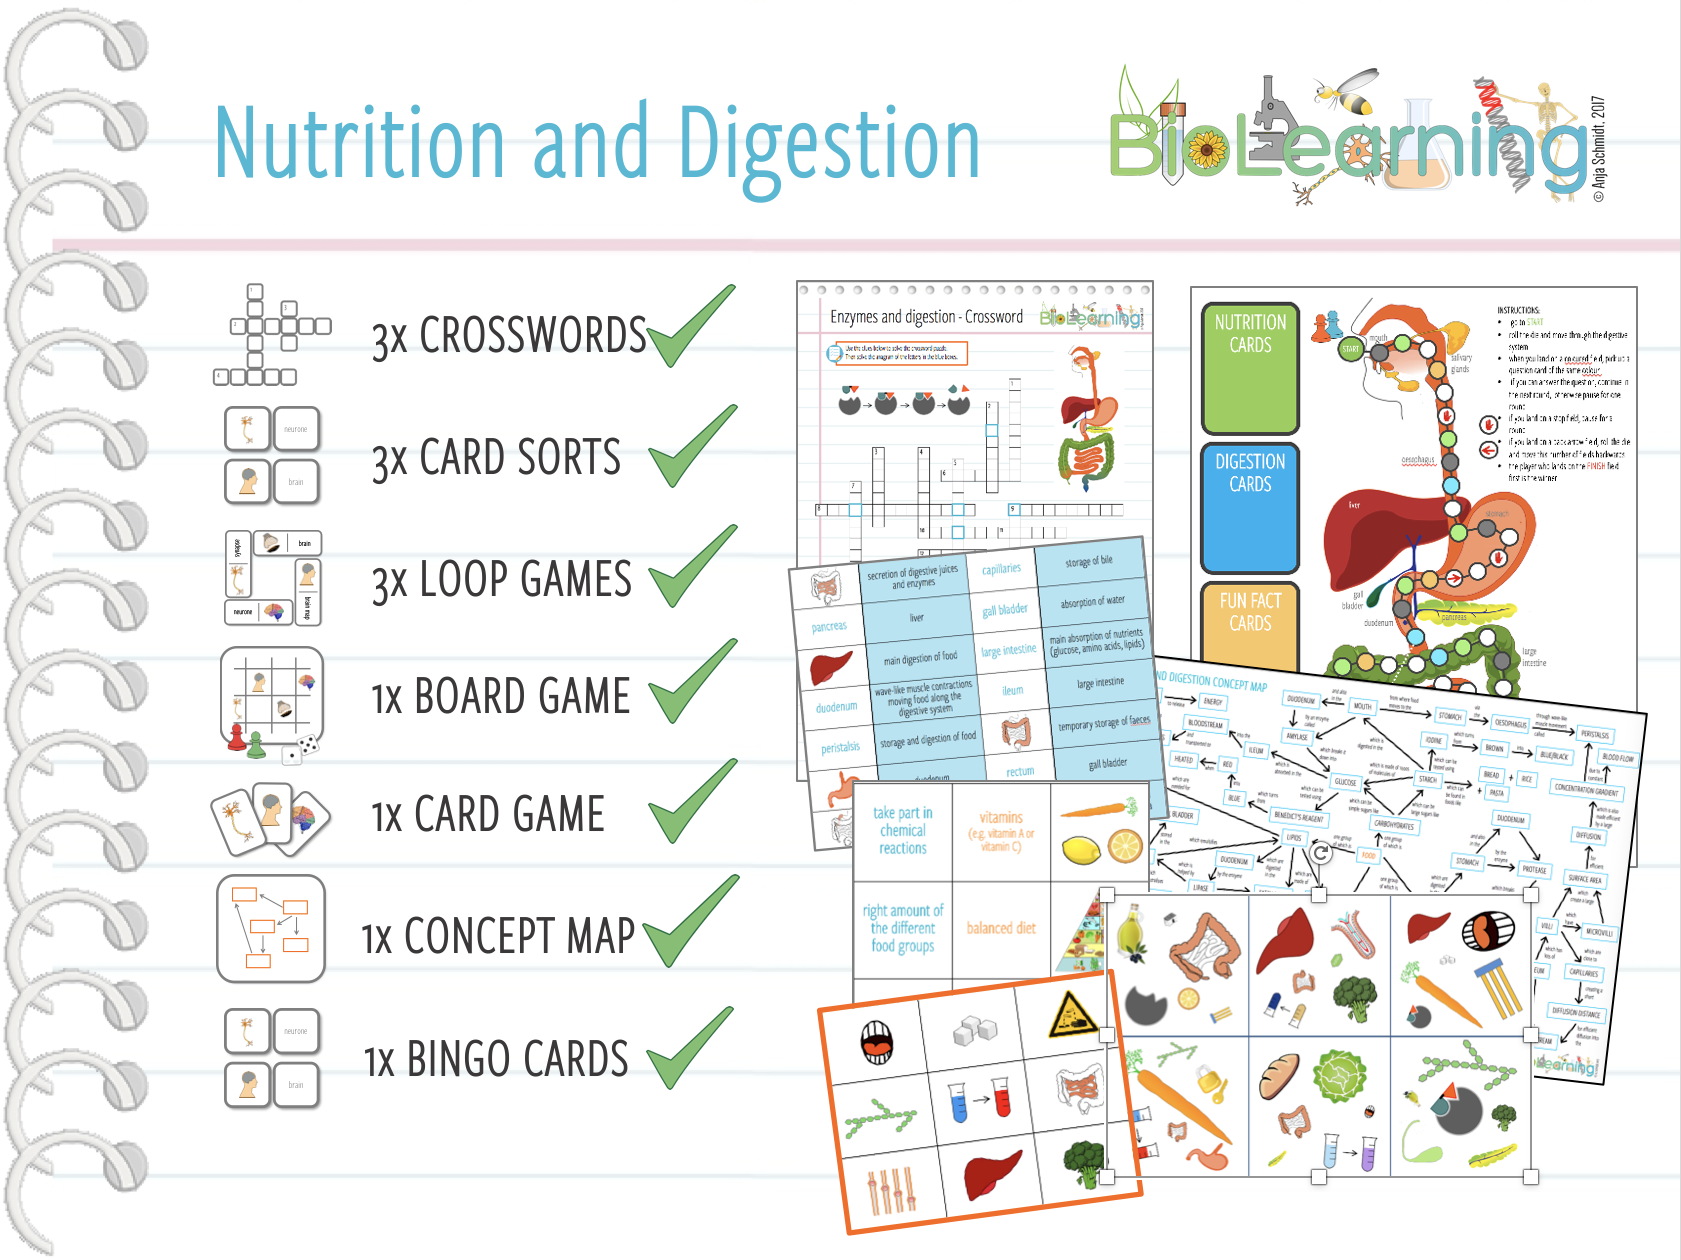 Nutrition and Digestion - 13x Activities and Games Bundle